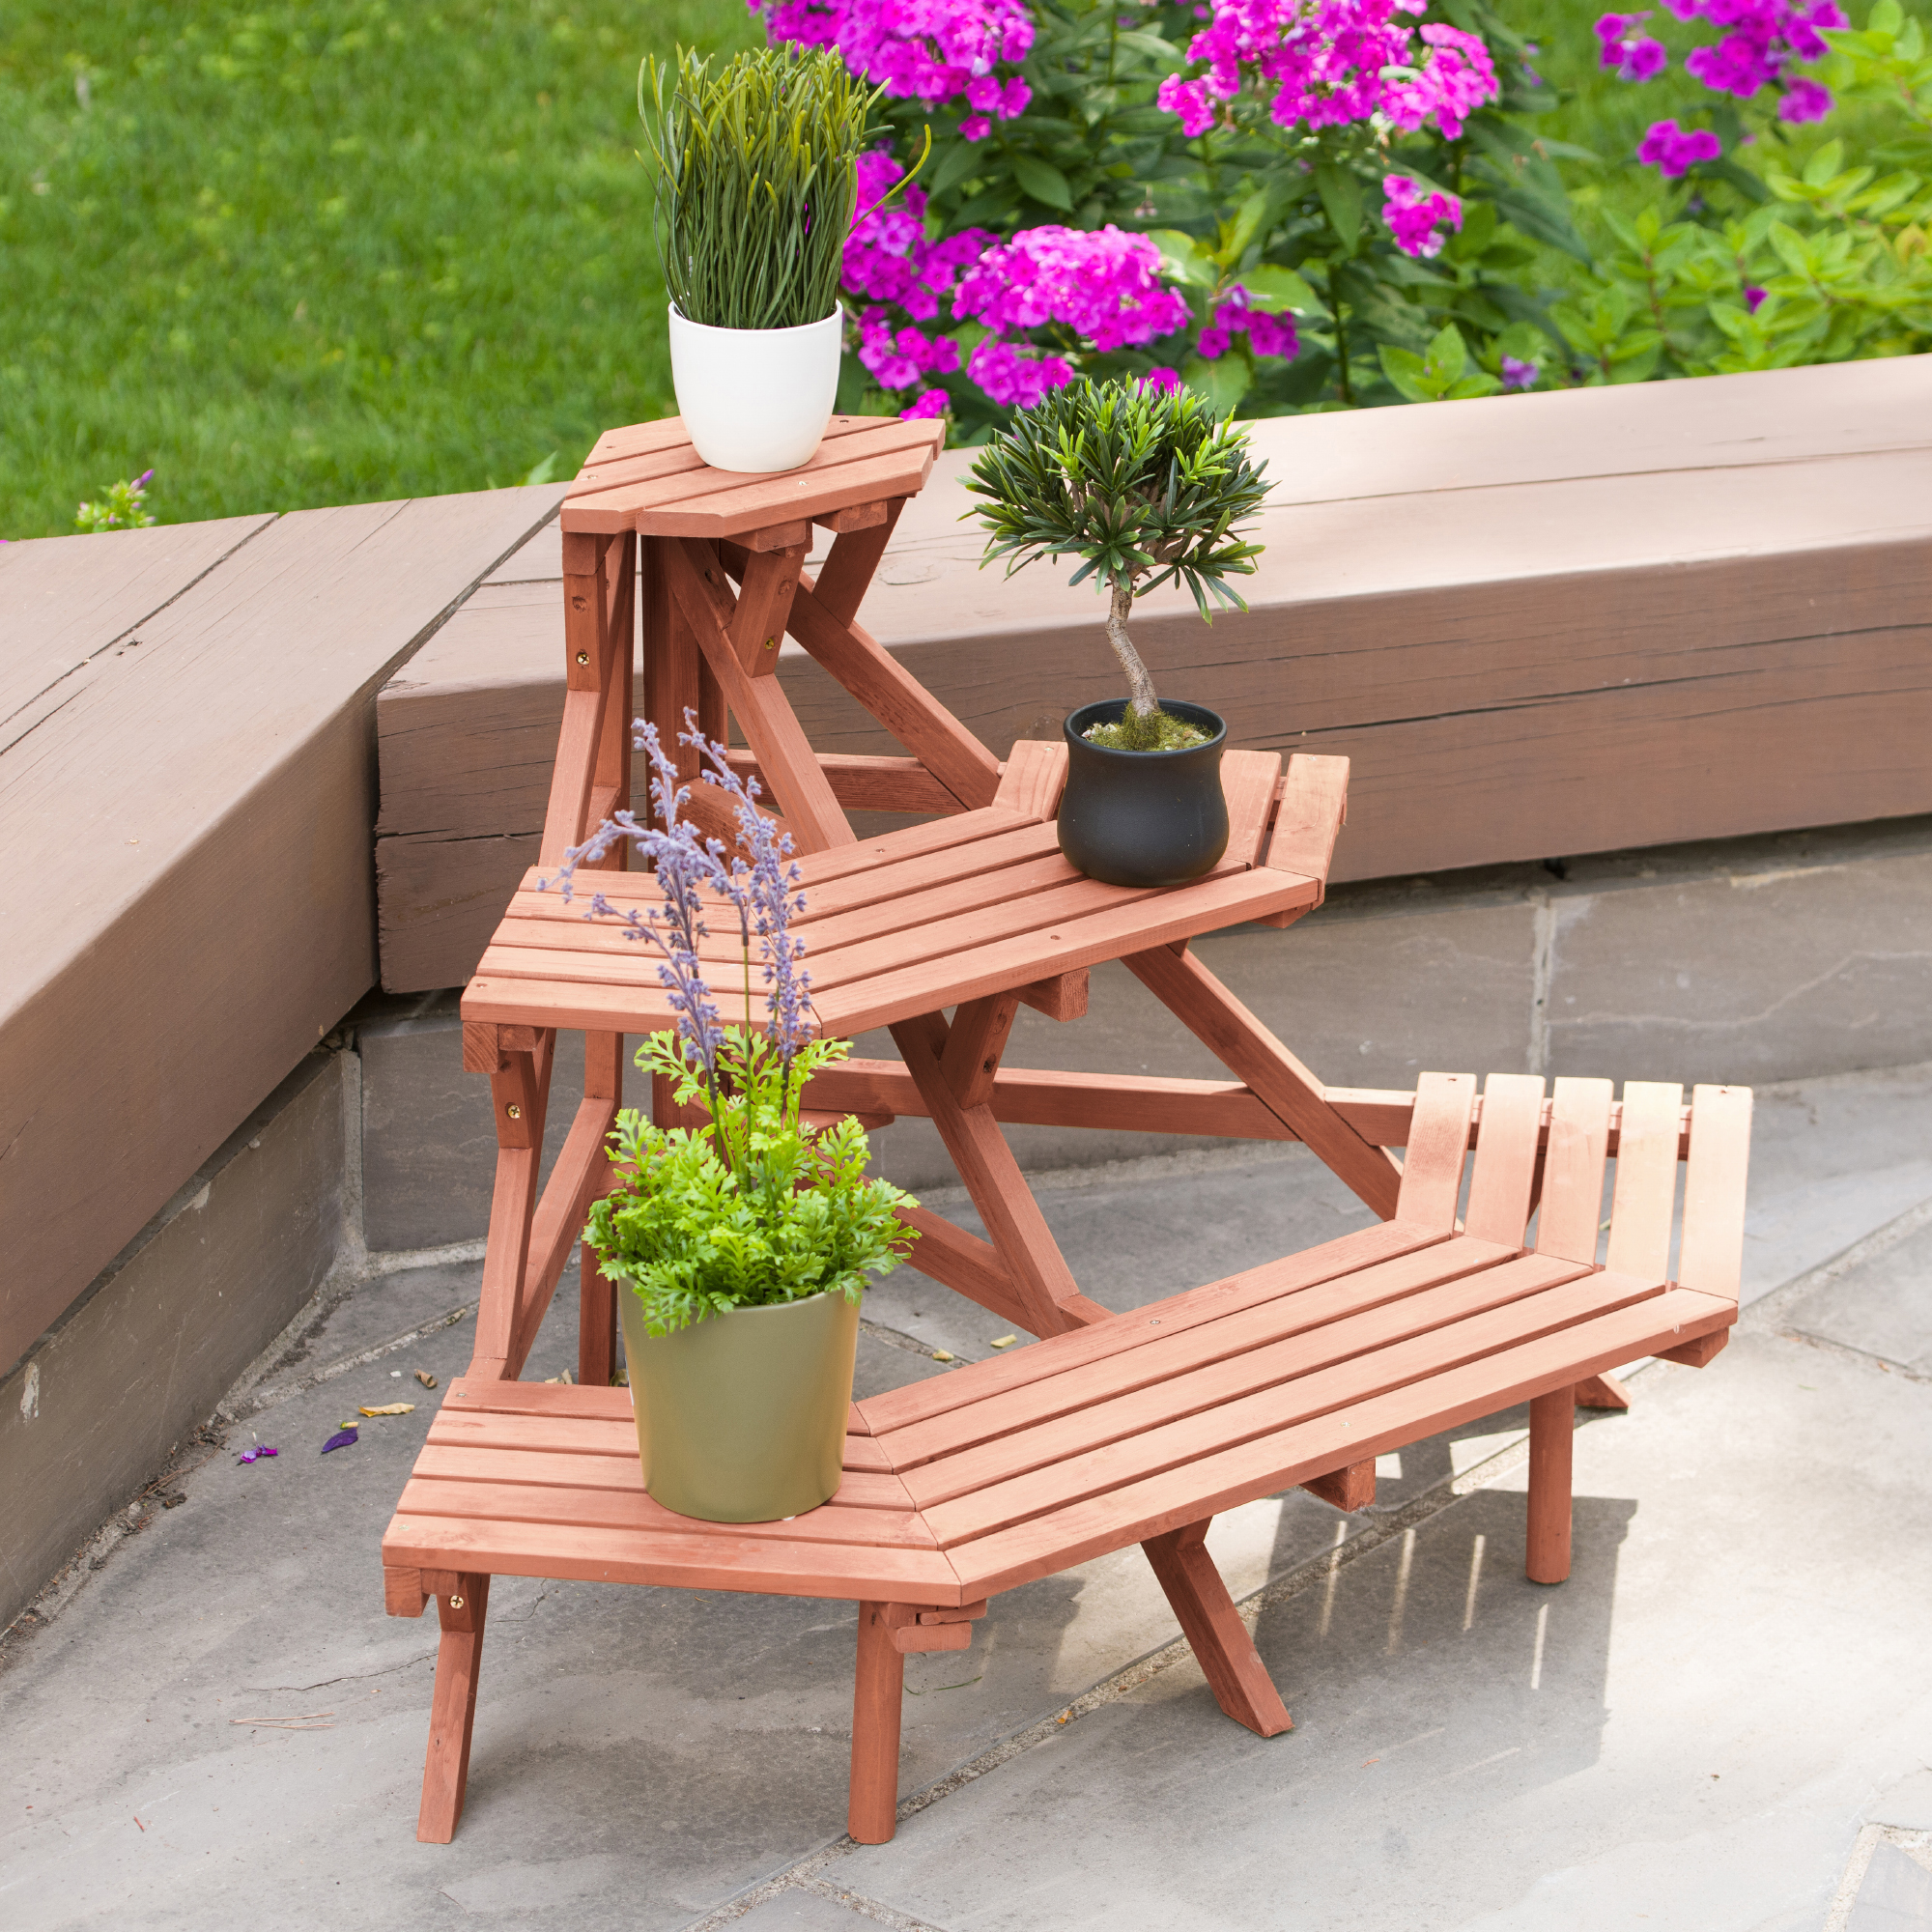 Leisure Season Ltd 3 Tier Quarter Round Plant Stand